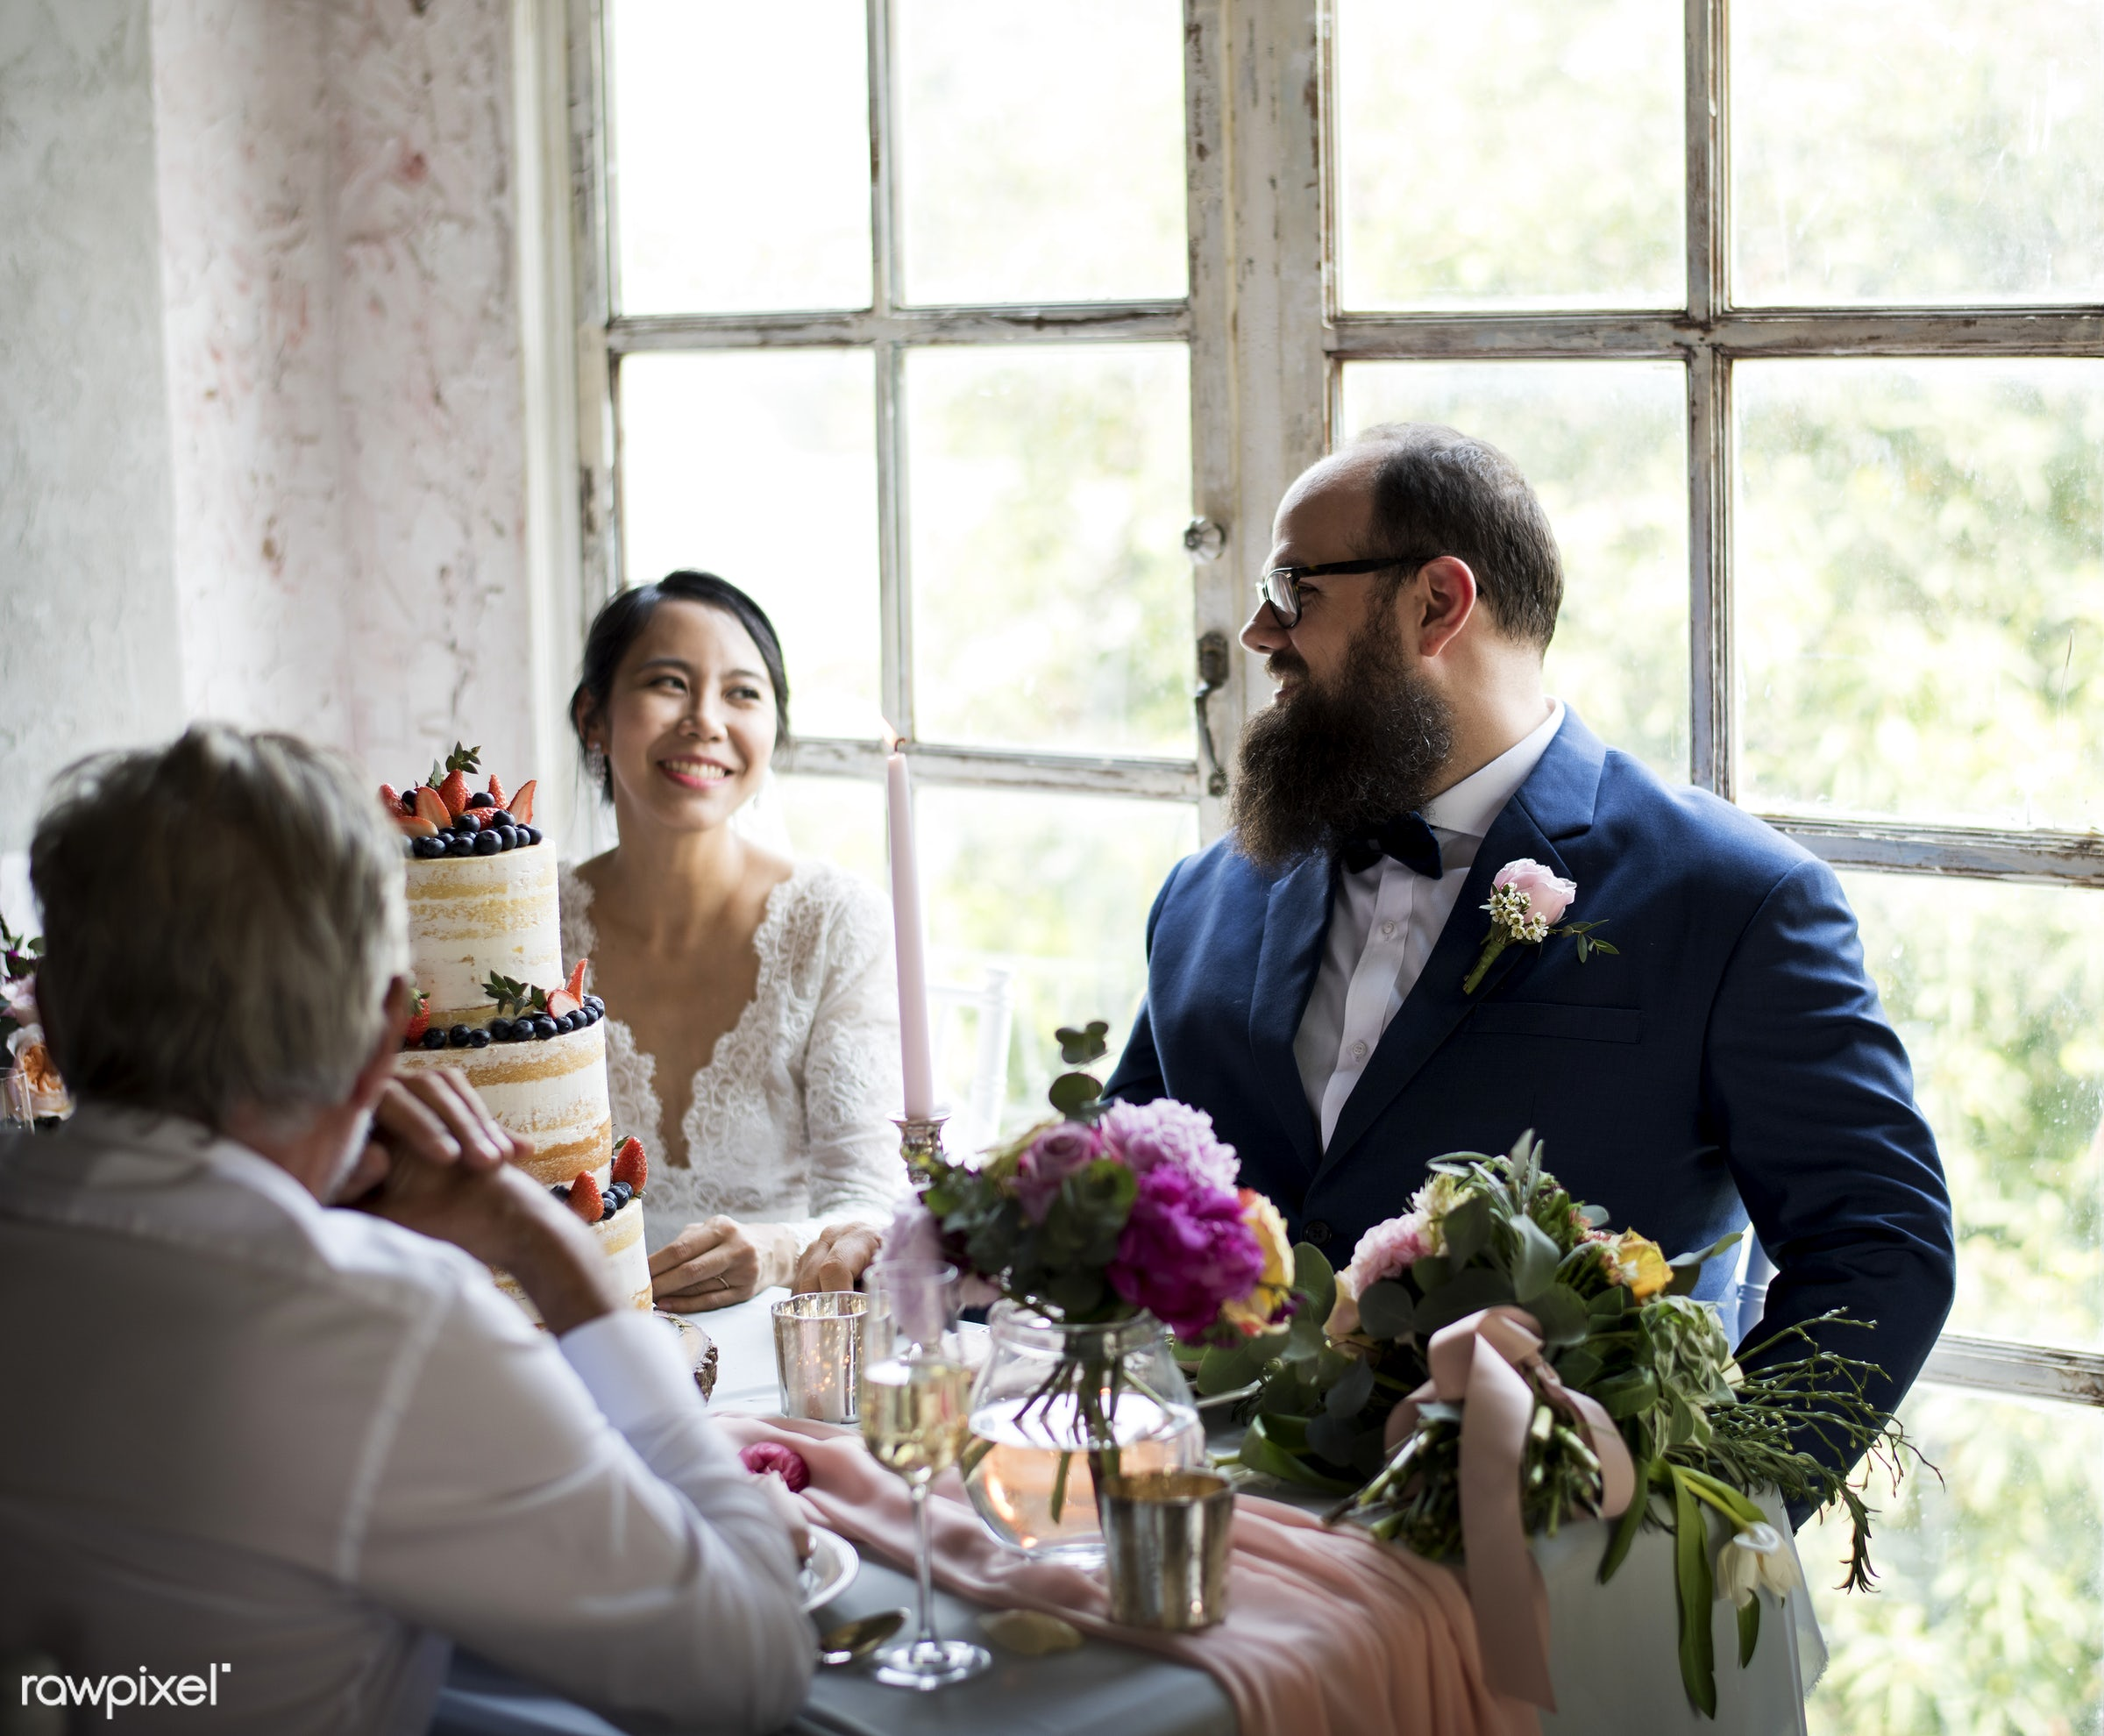 occasion, asian bride, people, together, love, married, friends, spouse, event, gathering, couple, flowers, cheerful, cake,...